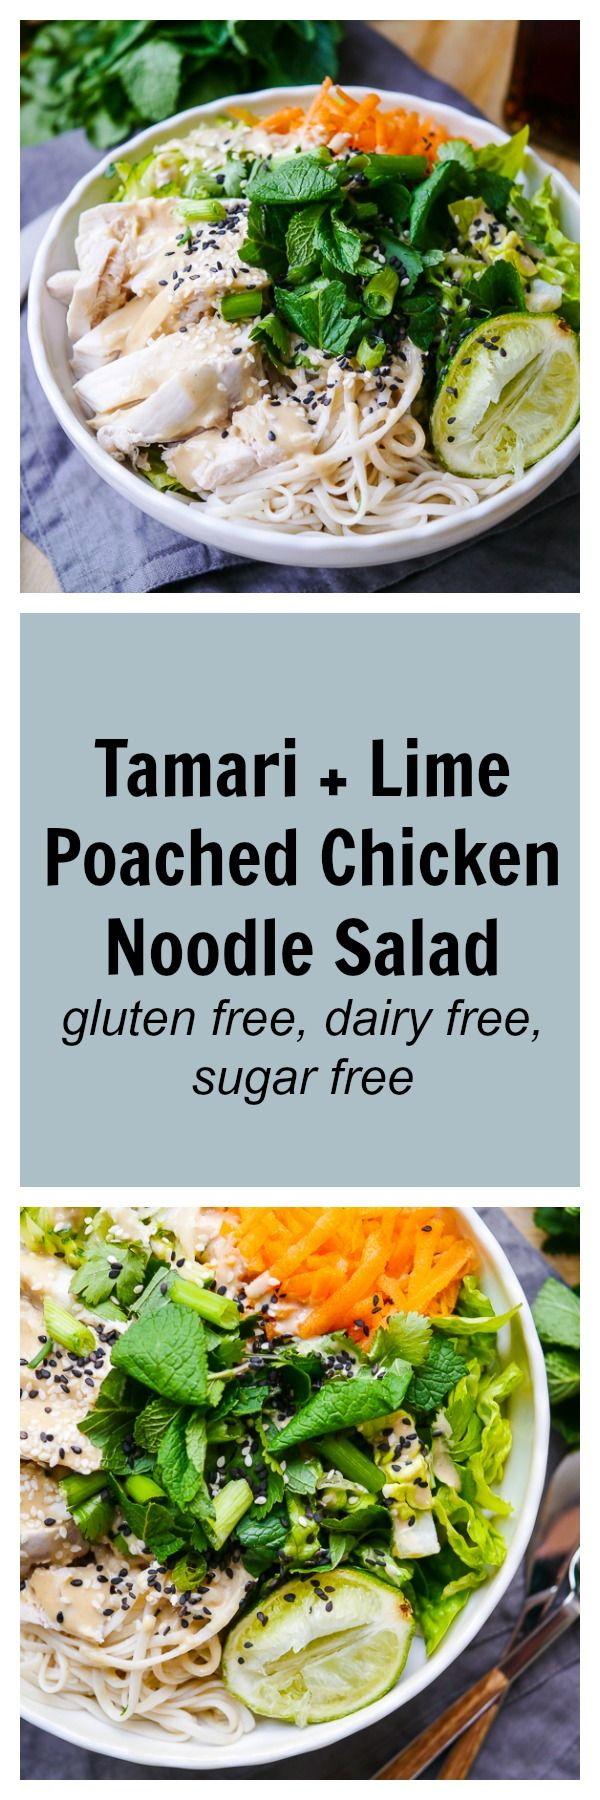 A poached chicken noodle salad packed with a rainbow of healthy veggies and an amazing tamari dressing! Gluten free, dairy free & sugar free, and so tasty! Recipe via nourisheveryday.com